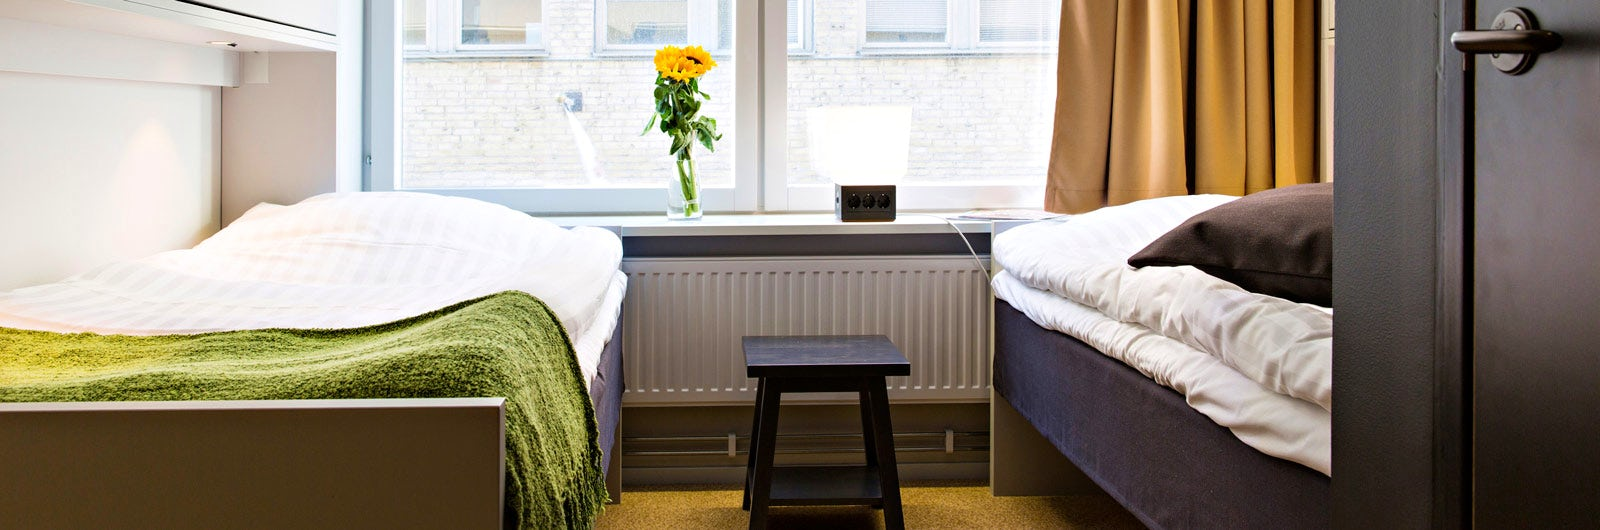 Twin beds and sunflowers at Göteborg City